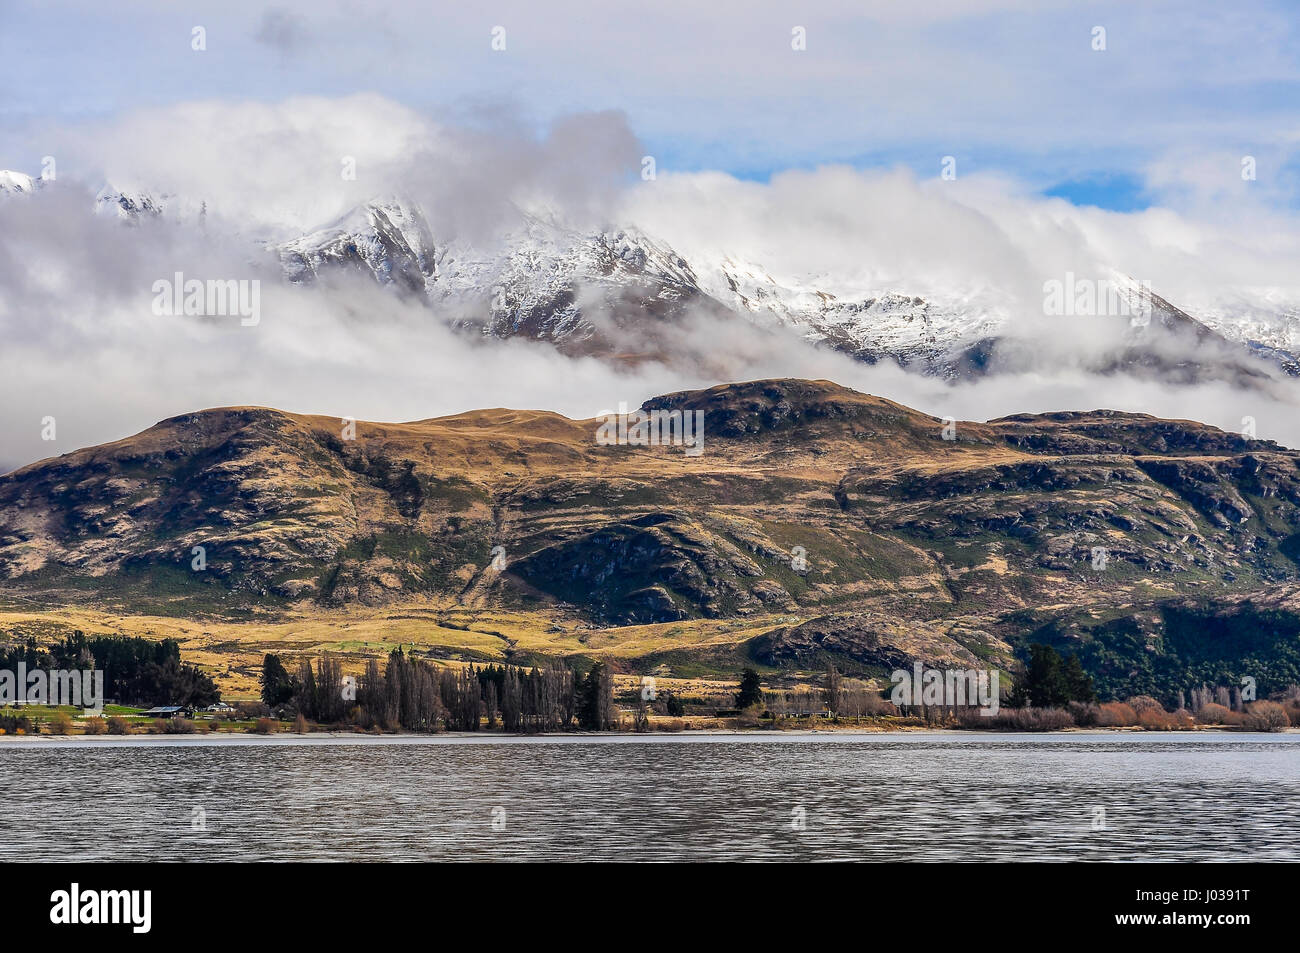 Snowy peaks near Wanaka in the Southern Lakes Region of New Zealand - Stock Image